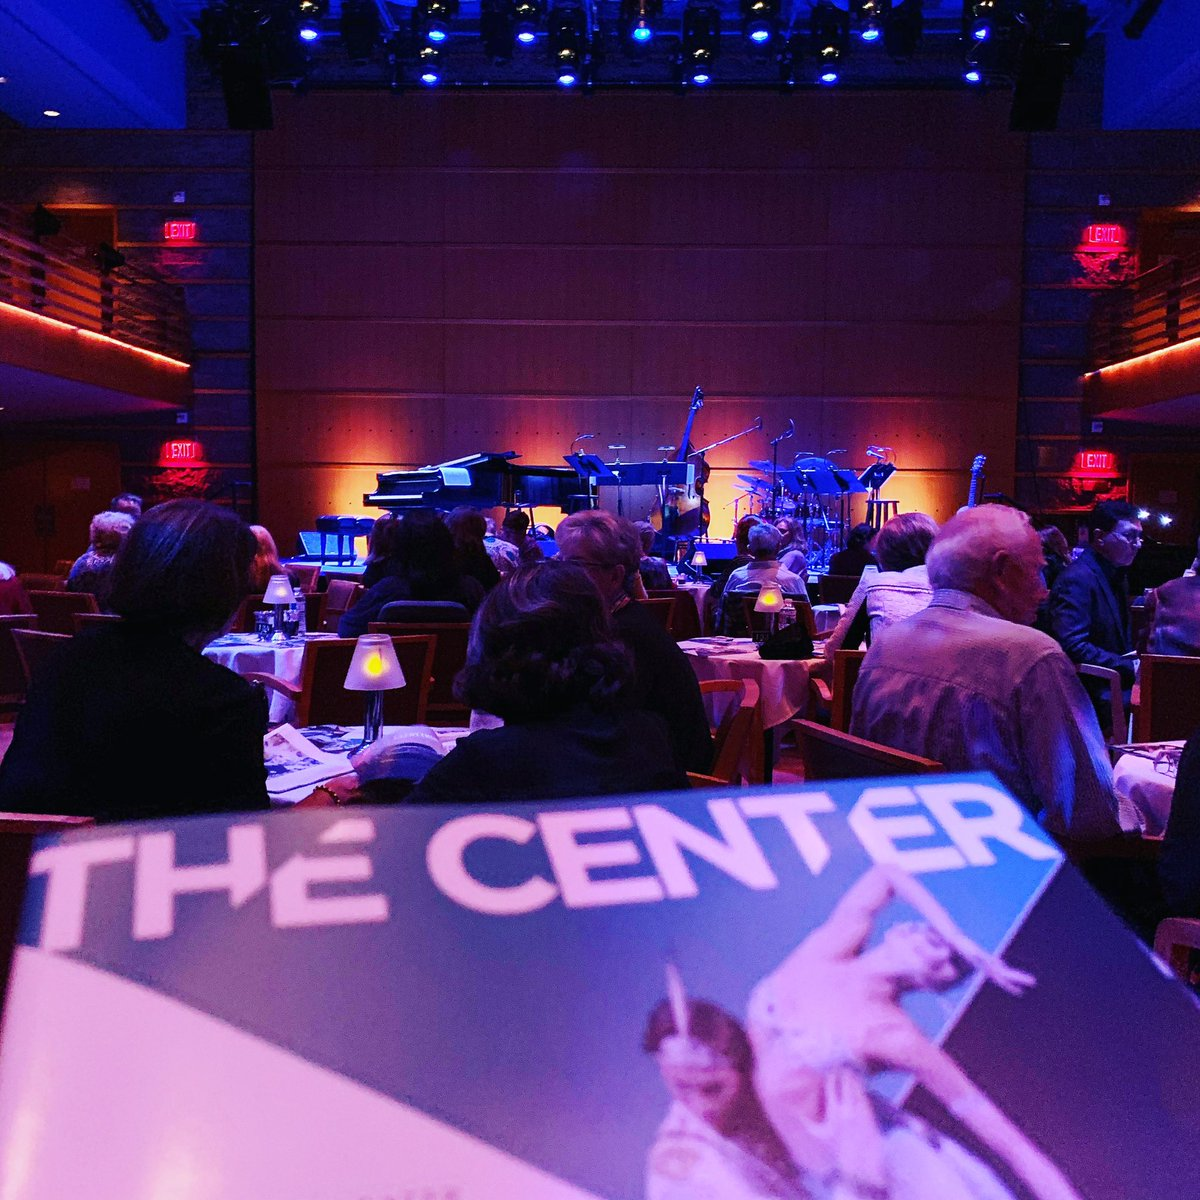 Tonight's assignment: #OpeningNight of @BettyBuckley's #Cabaret at @SegerstromArts!!! Happy to see her since my friend Philip and I missed her in #HelloDolly!! 🎭#broadway #musicals #theatre